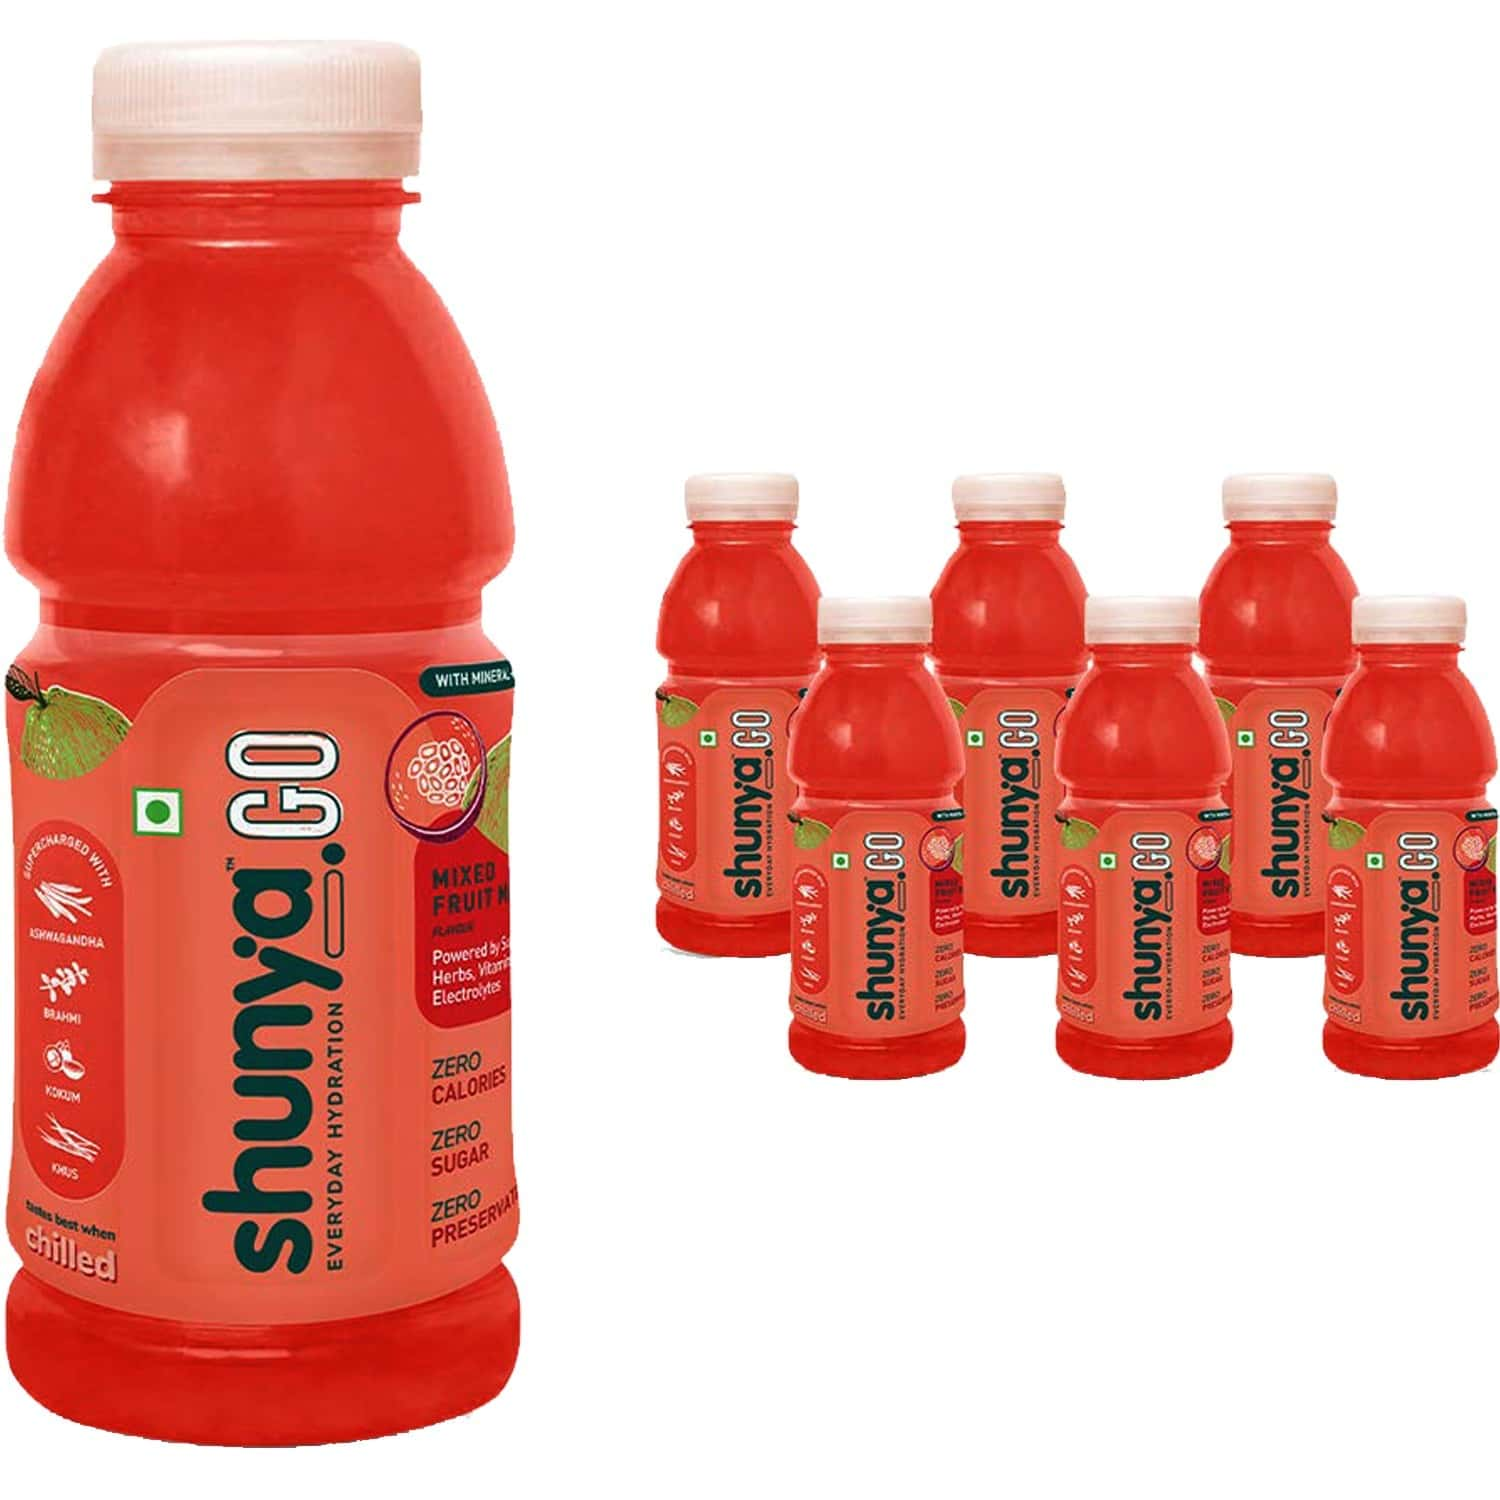 Shunya Go Zappy Mixed Fruit Mania | Active Hydration Drink With 0 Calories, 0 Sugar, 0 Preservatives Pack Of 6 (300ml X 6)